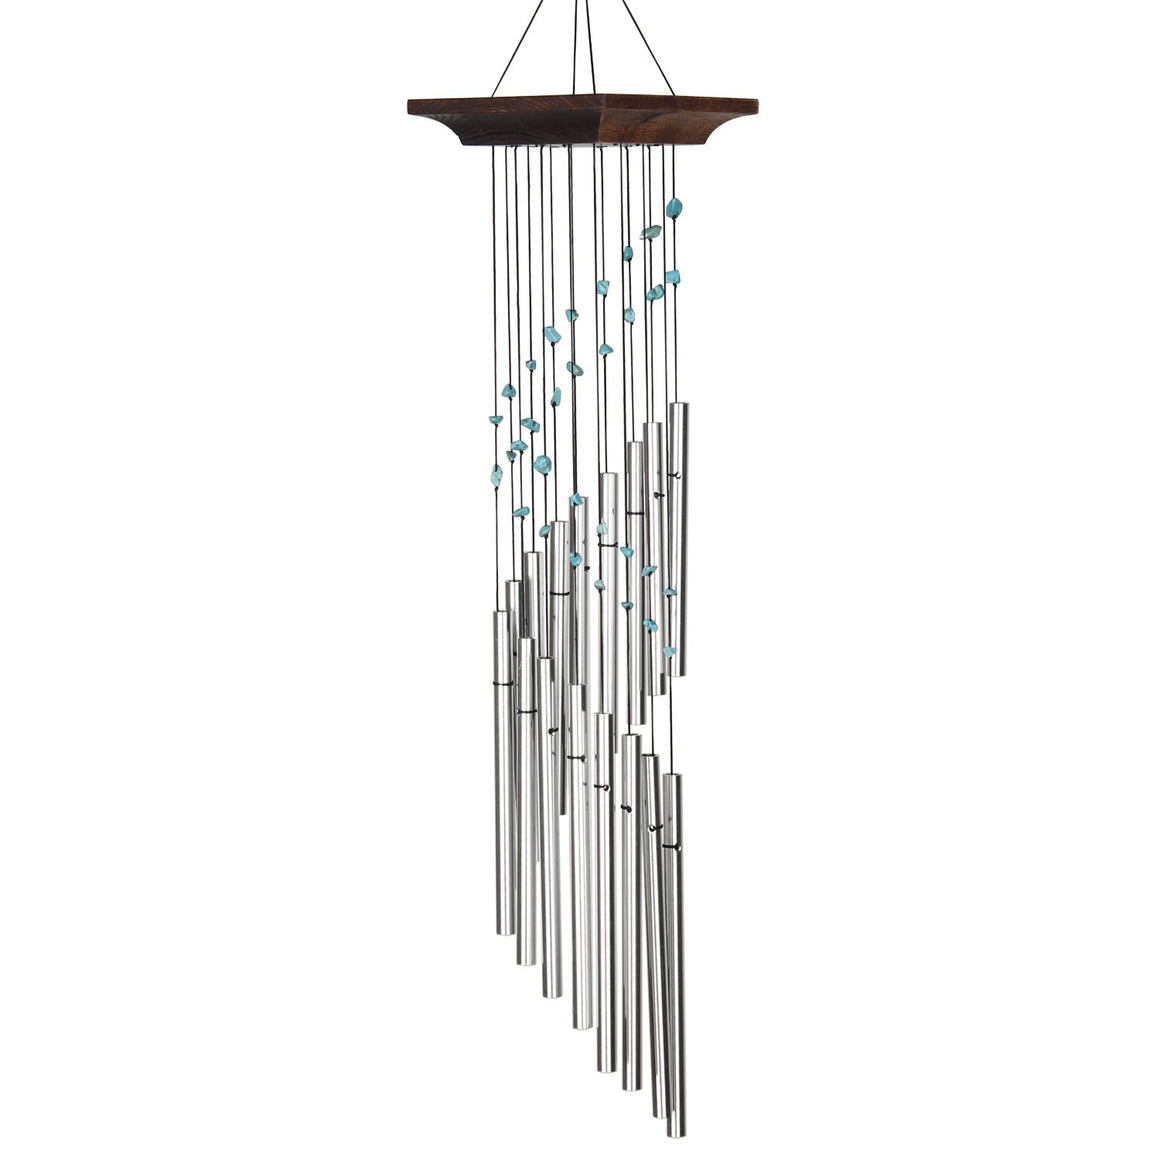 Woodstock Mystic Spiral Chime - Turquoise